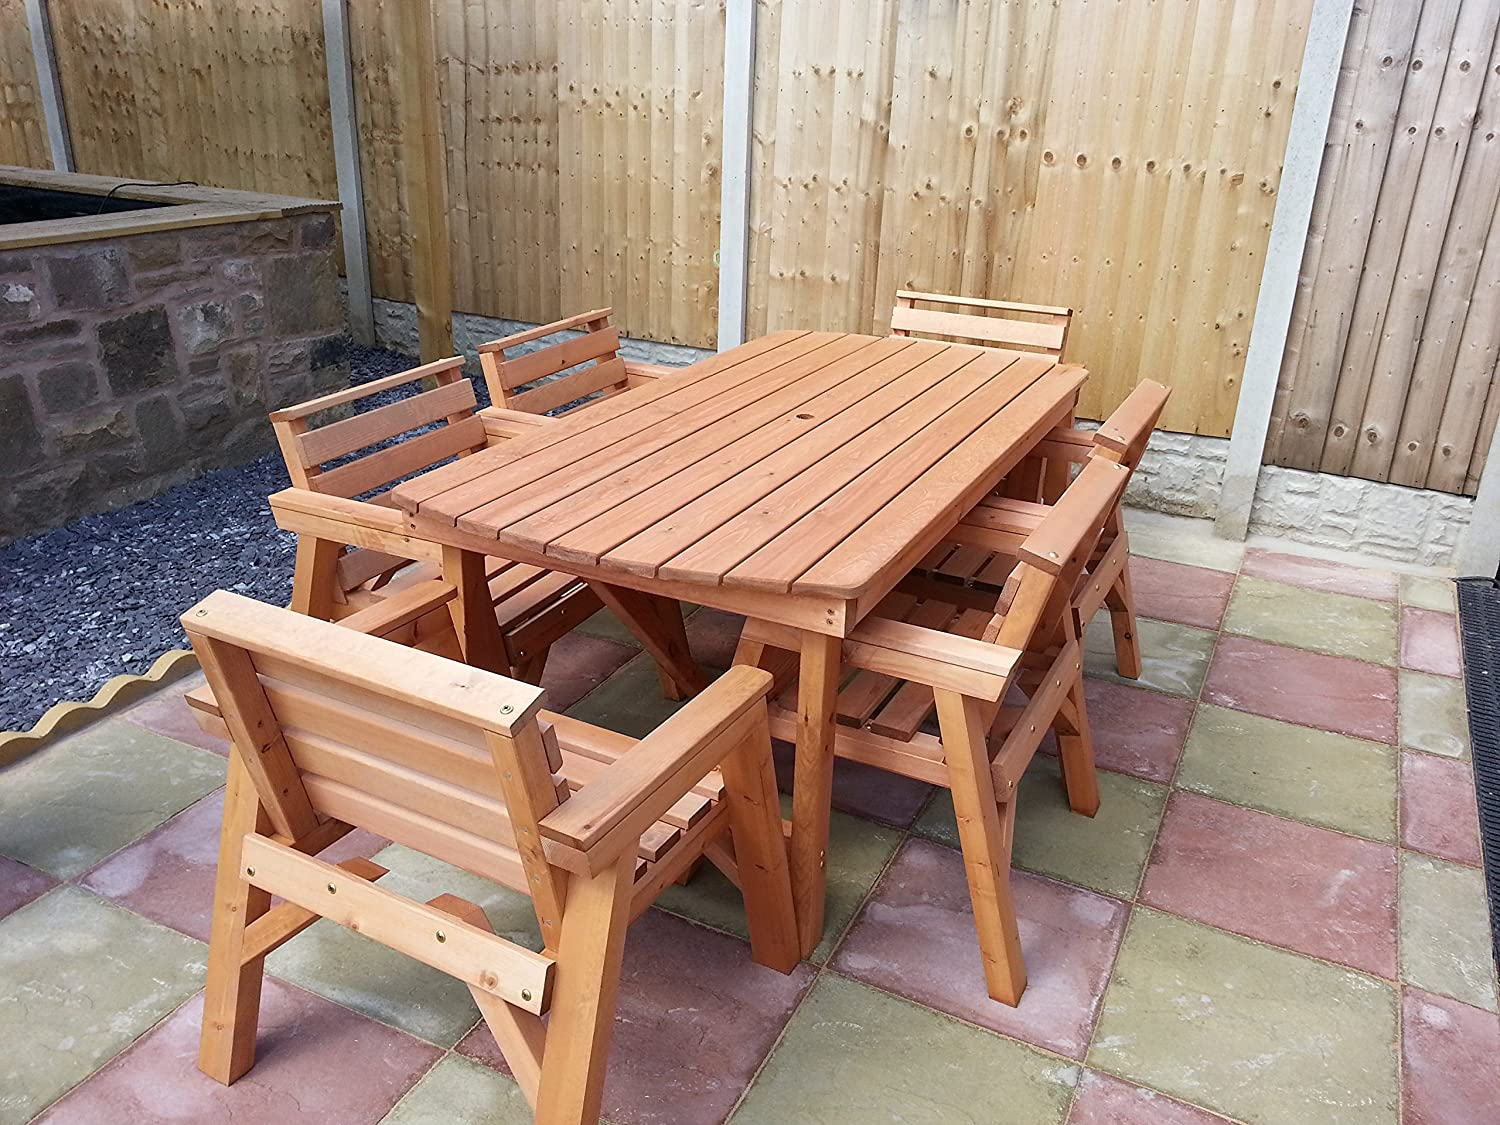 Superb Wooden Garden Table And Chairs Part - 8: Solid Wooden Garden Furniture Set. 6u0027 Table U0026 6 Chairs: Amazon.co.uk: Garden  U0026 Outdoors